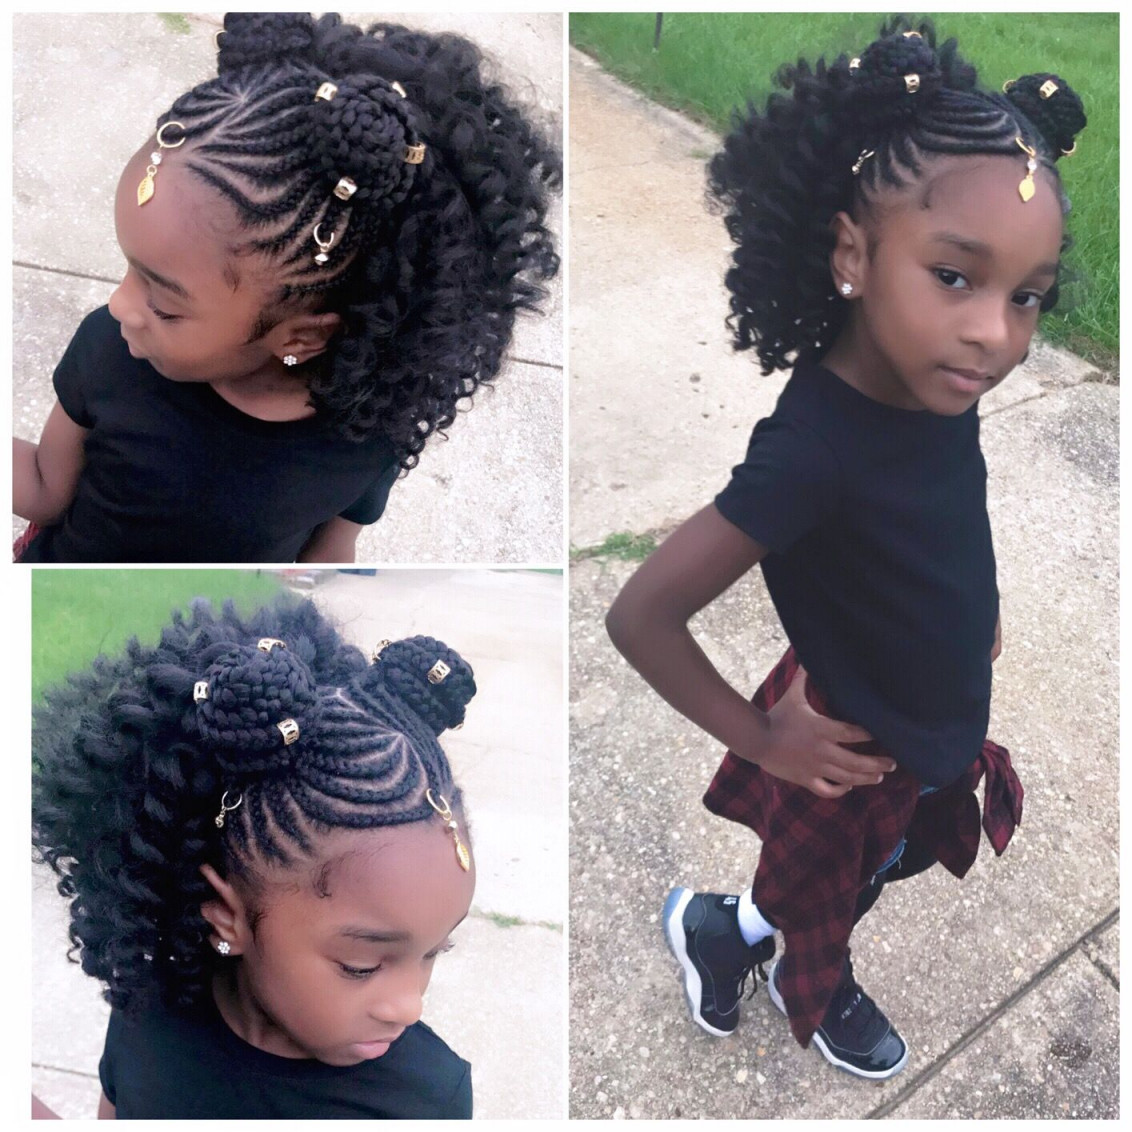 Cornrow-Braids-with-Two-High-Buns-on-Both-Sides Cutest African American Kids Hairstyles